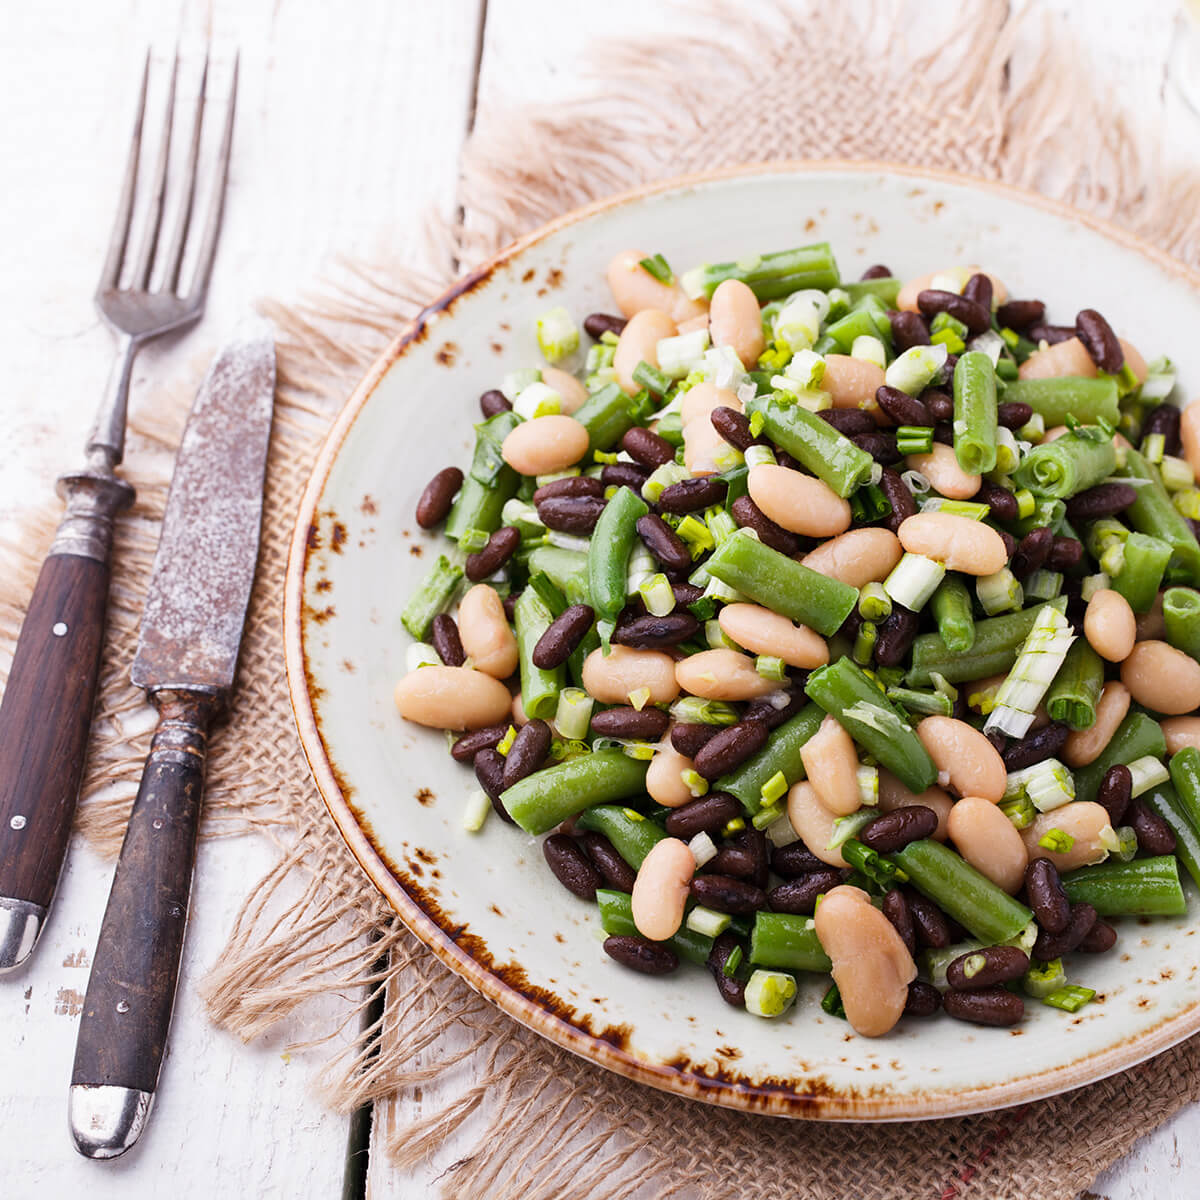 Discussion on this topic: Italian Garbanzo Bean Salad, italian-garbanzo-bean-salad/